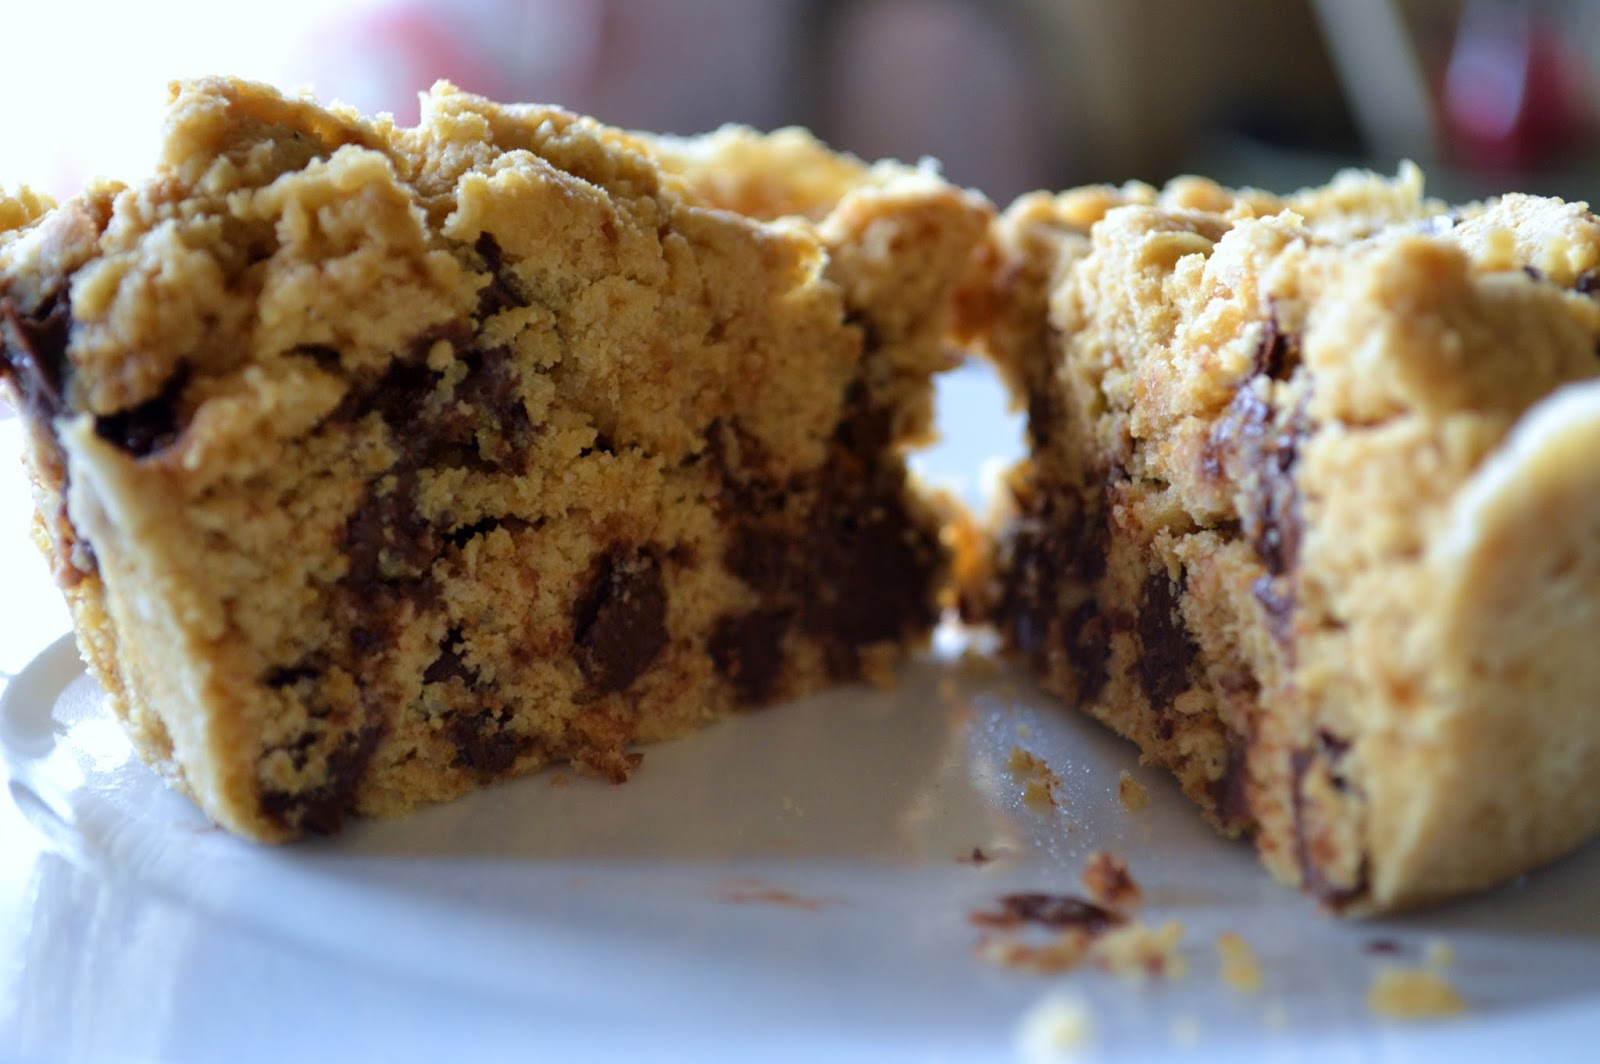 Jenna's Romantic Notions: Chocolate Chip Mug Cake